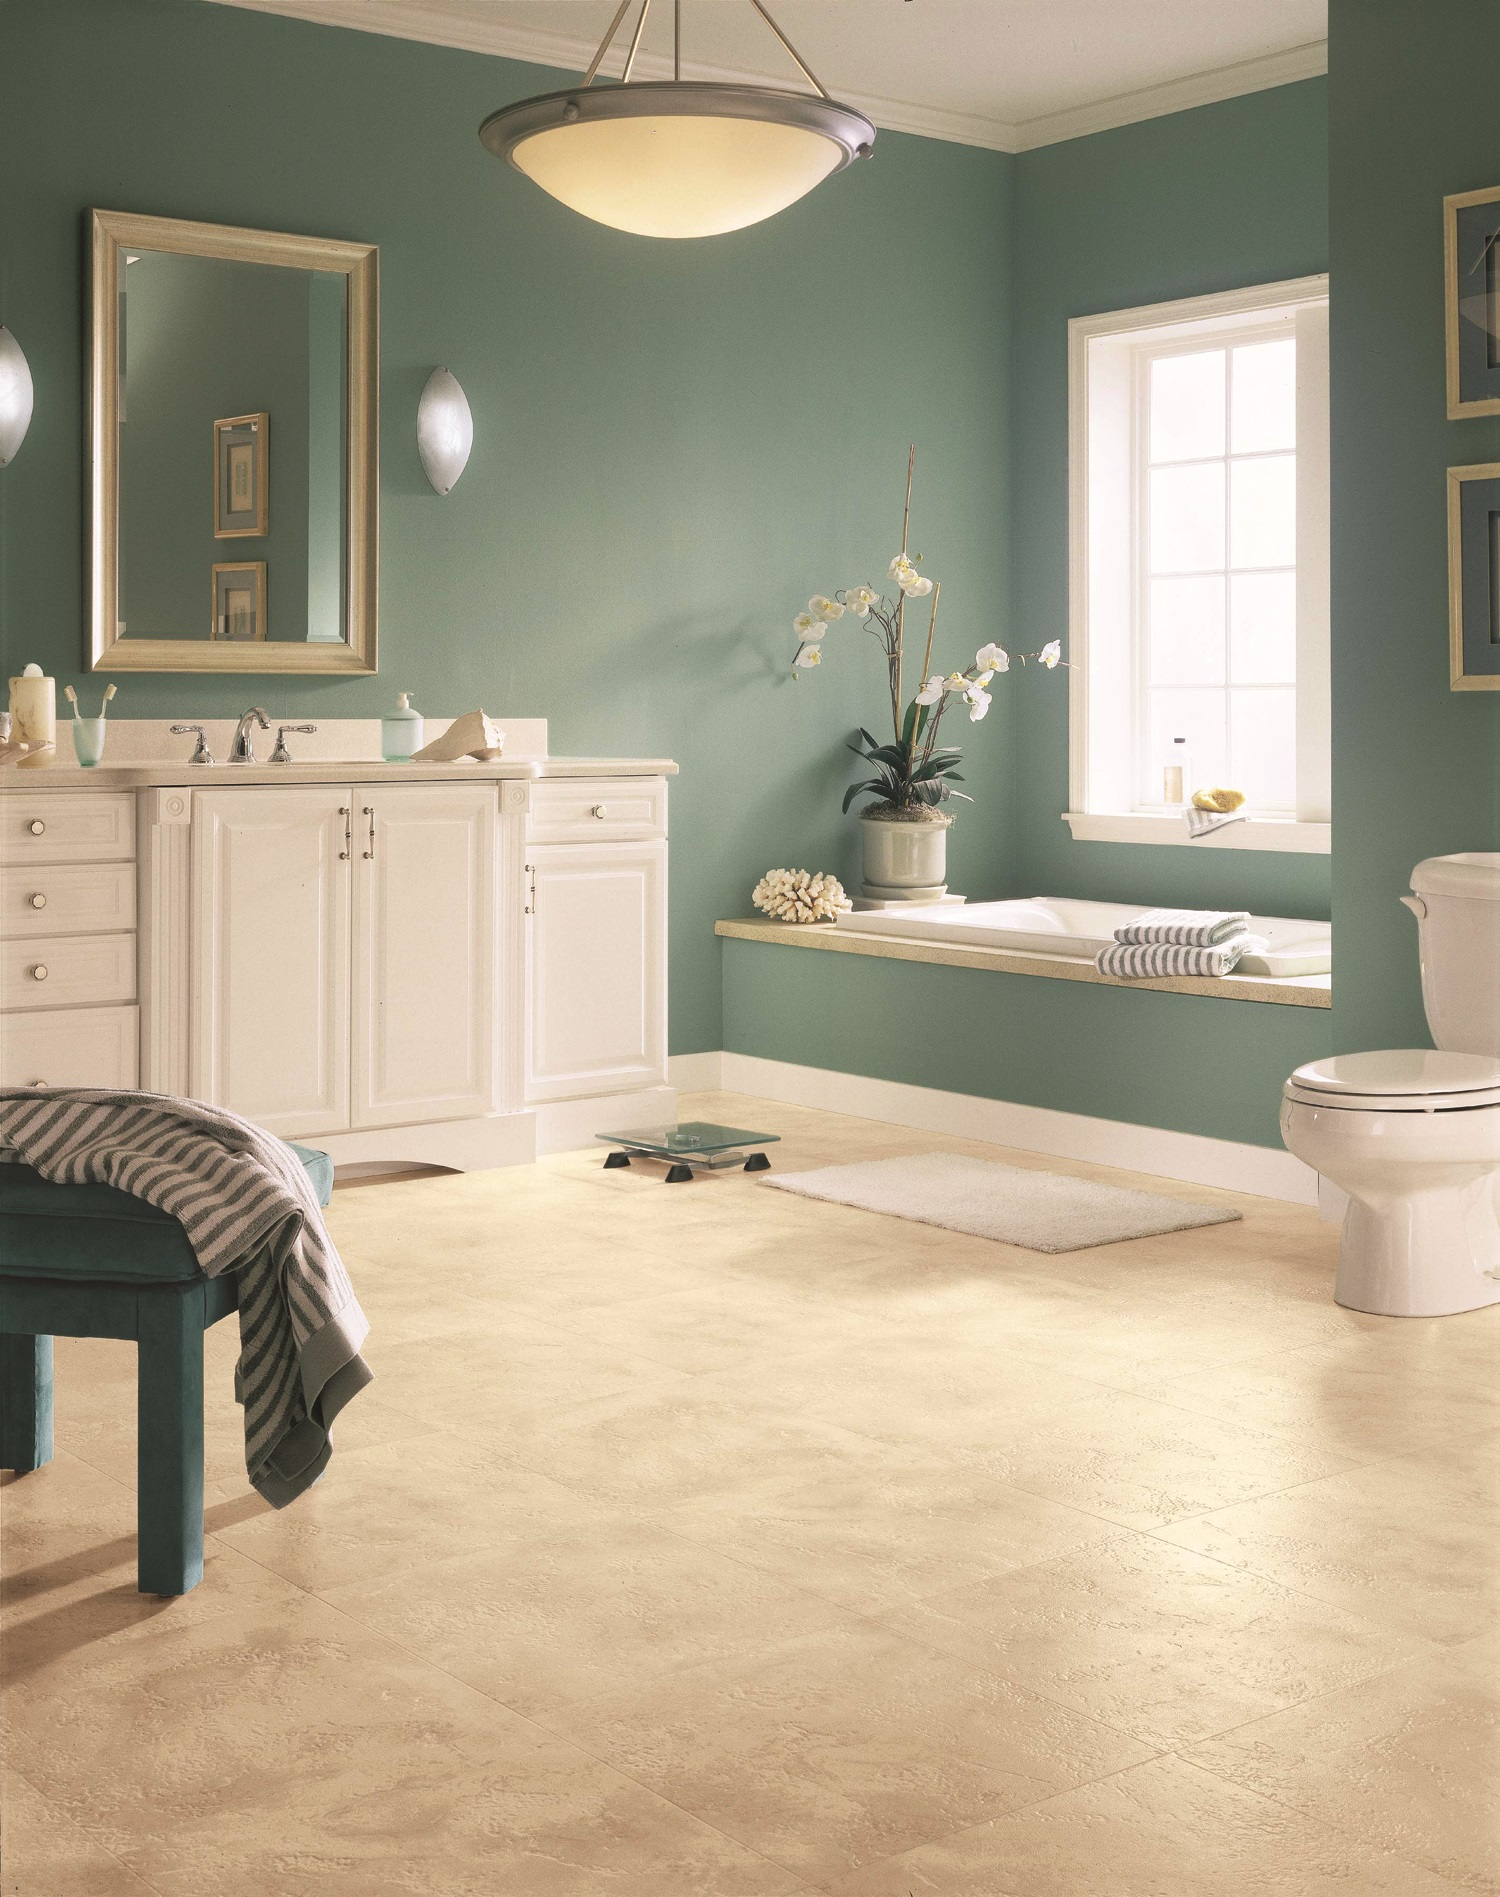 Floor - Bathroom